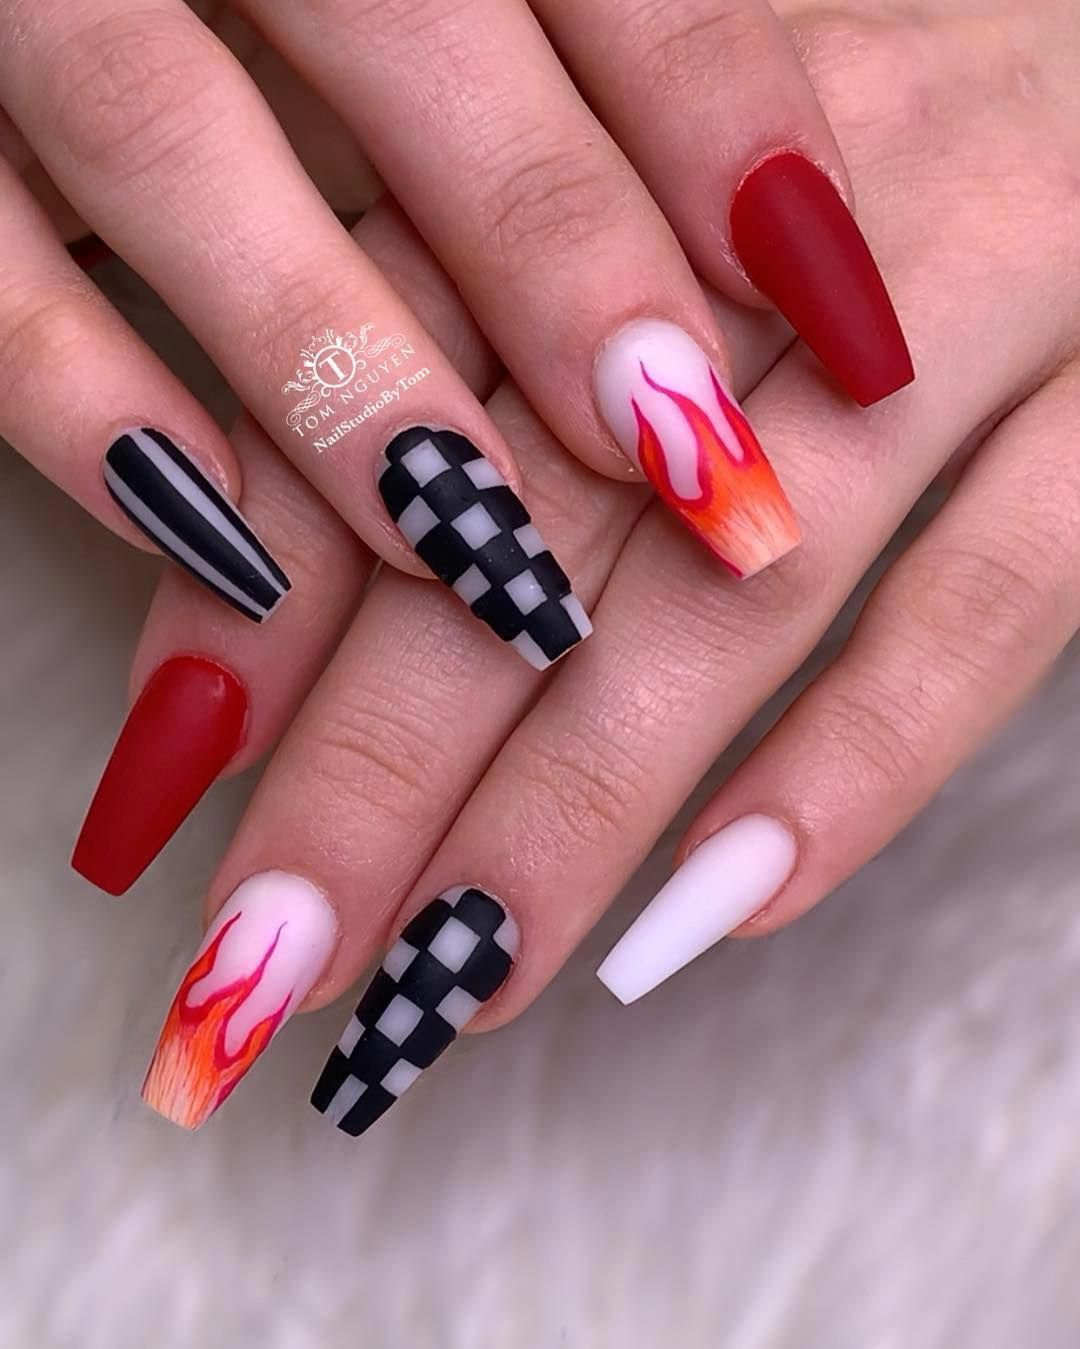 Edgy Nail Look as requested @leslieleeannn ❤️😍🤩🤩 Tag